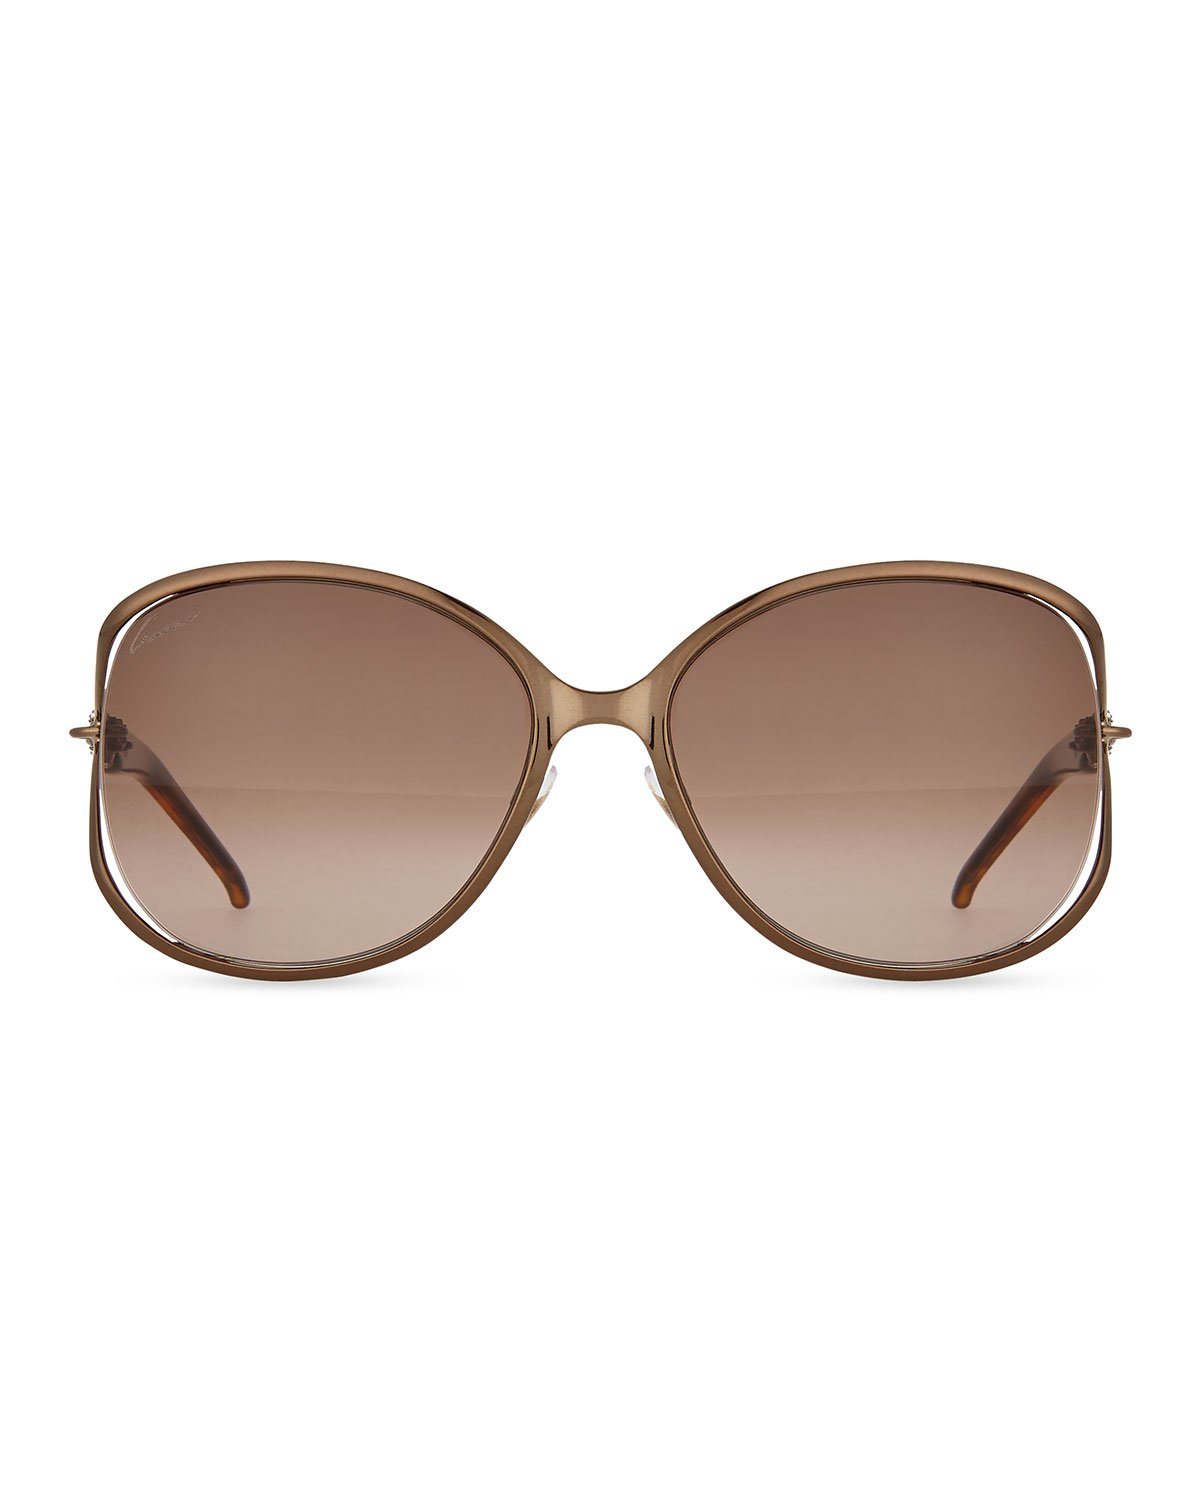 b6cc66b769 Lyst - Gucci Large Butterfly Sunglasses With Logo Arm in Metallic ...